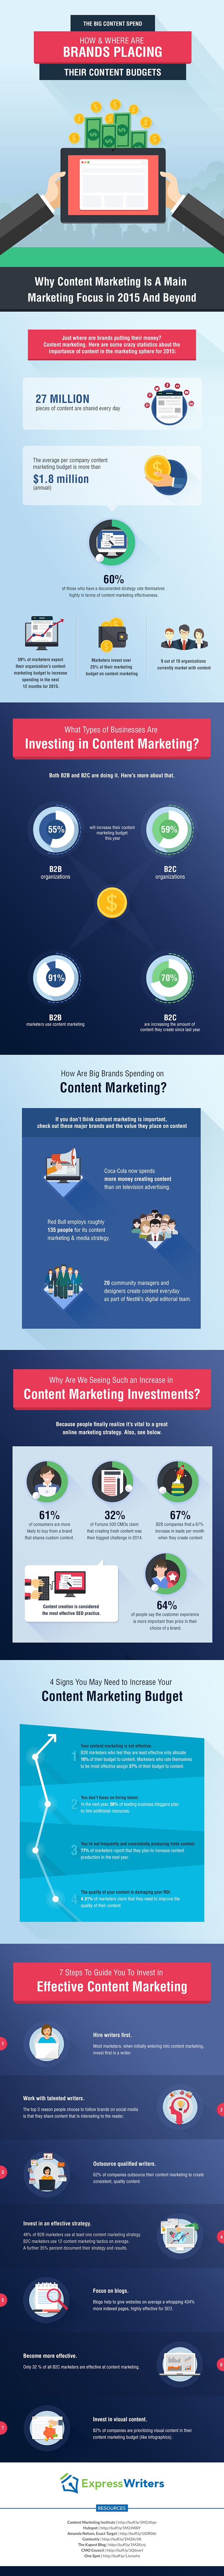 How & Where Are Brands Placing Their Content Budgets